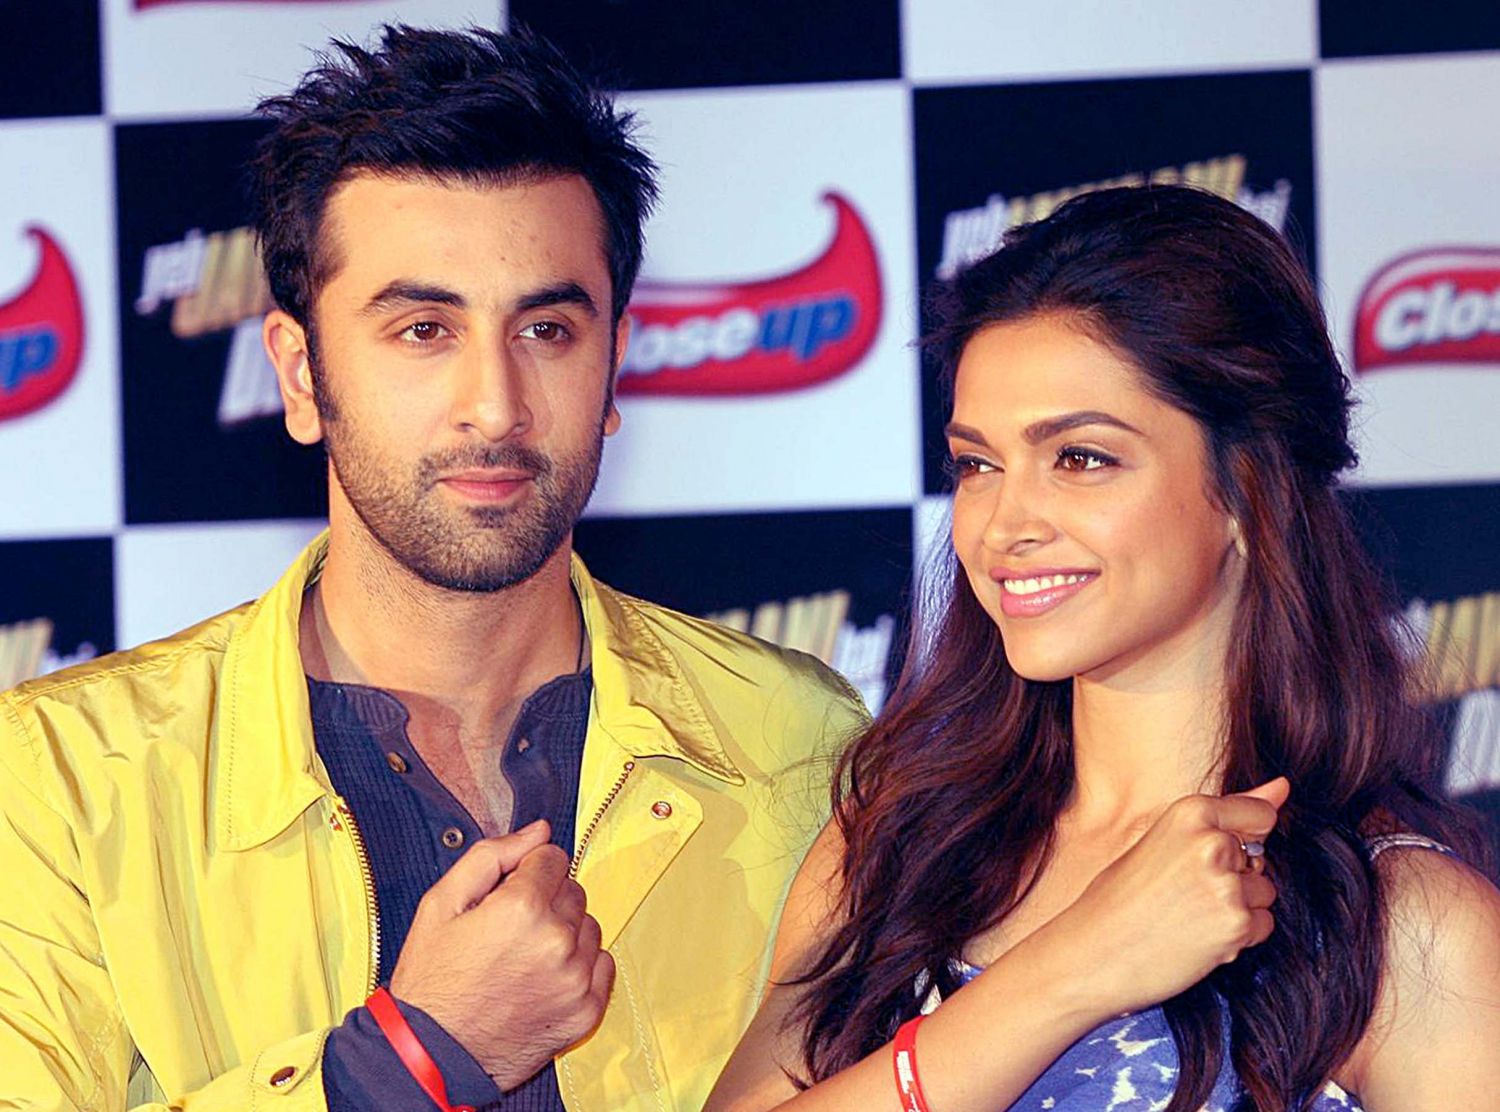 deepika padukone and ranbir kapoor dating It's very much there deepika padukone's pics flaunting her 'rk' tattoo while working out go viral - deepika had got the 'rk' tattoo done while she was dating ranbir kapoor.